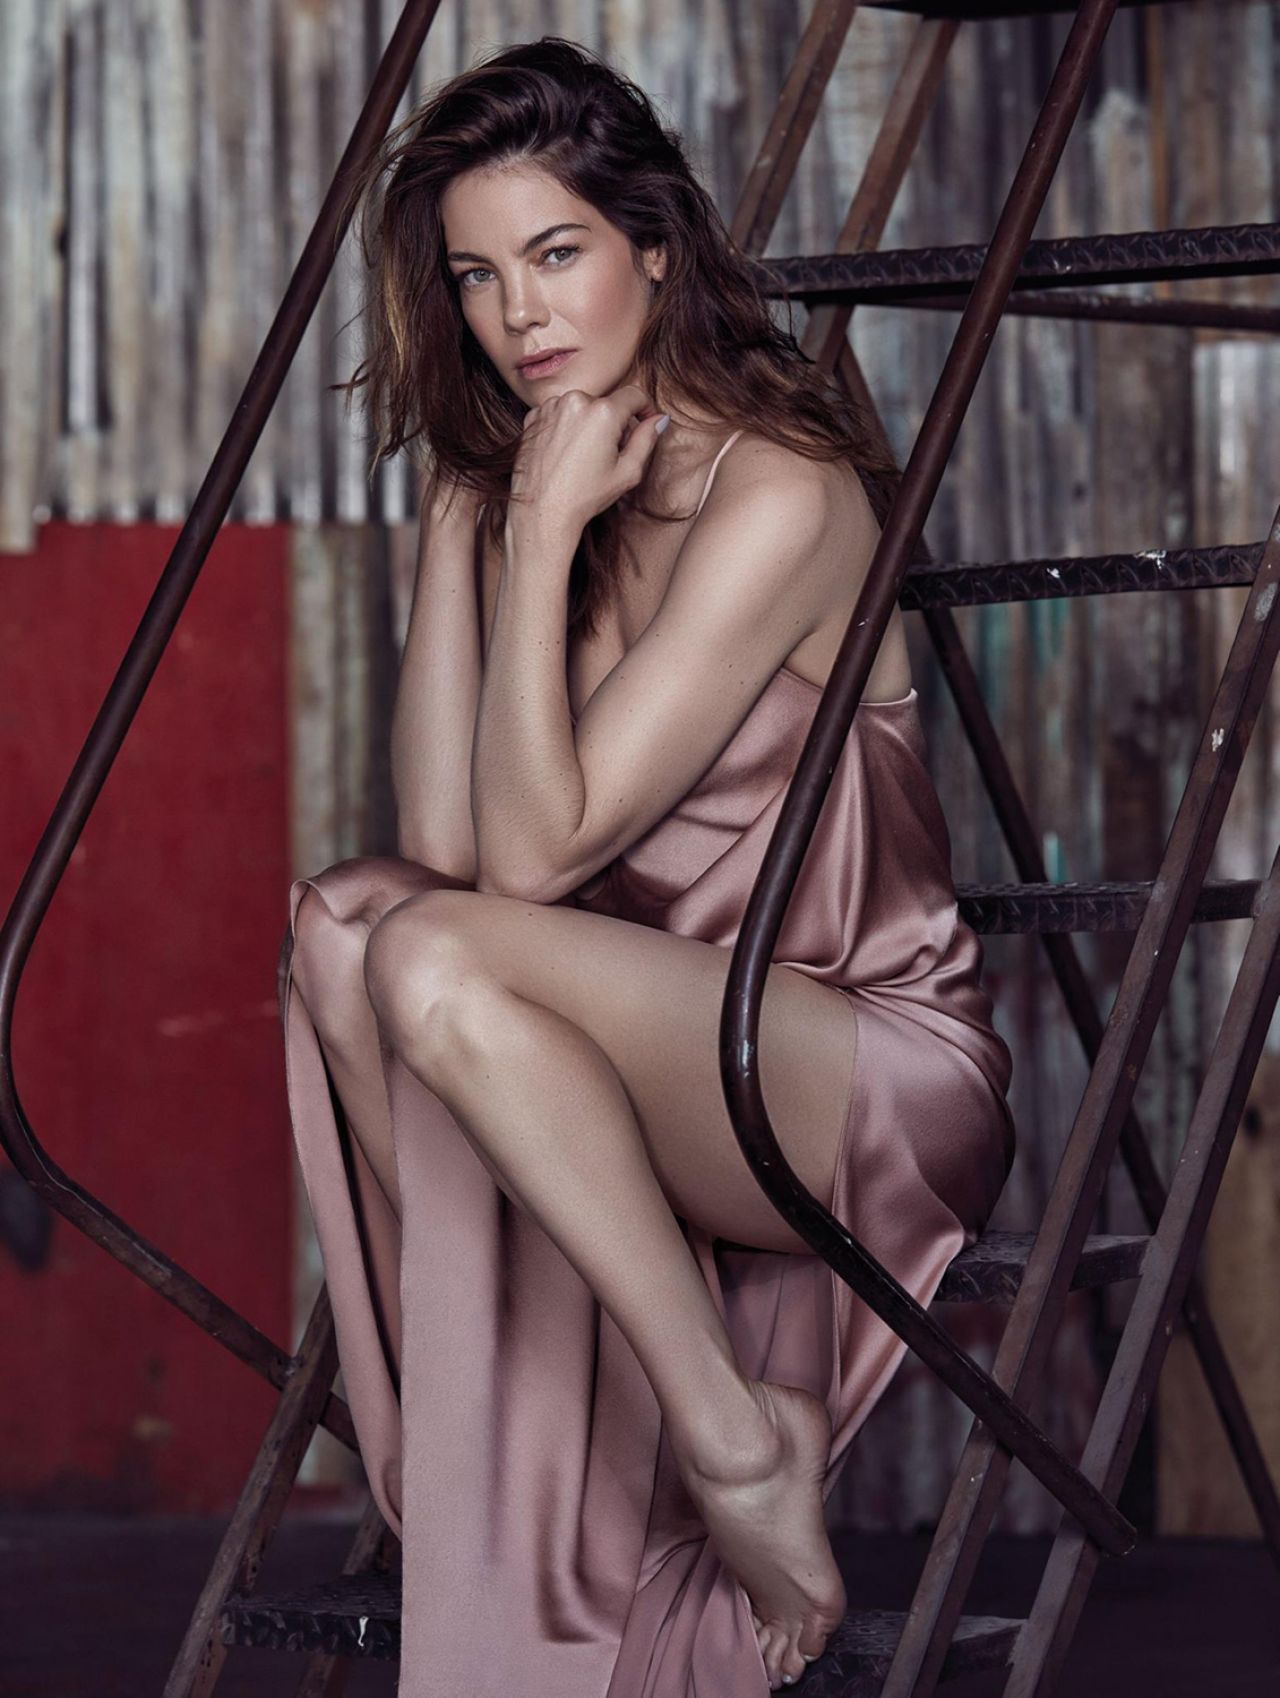 michelle-monaghan-photoshoot-for-no-tofu